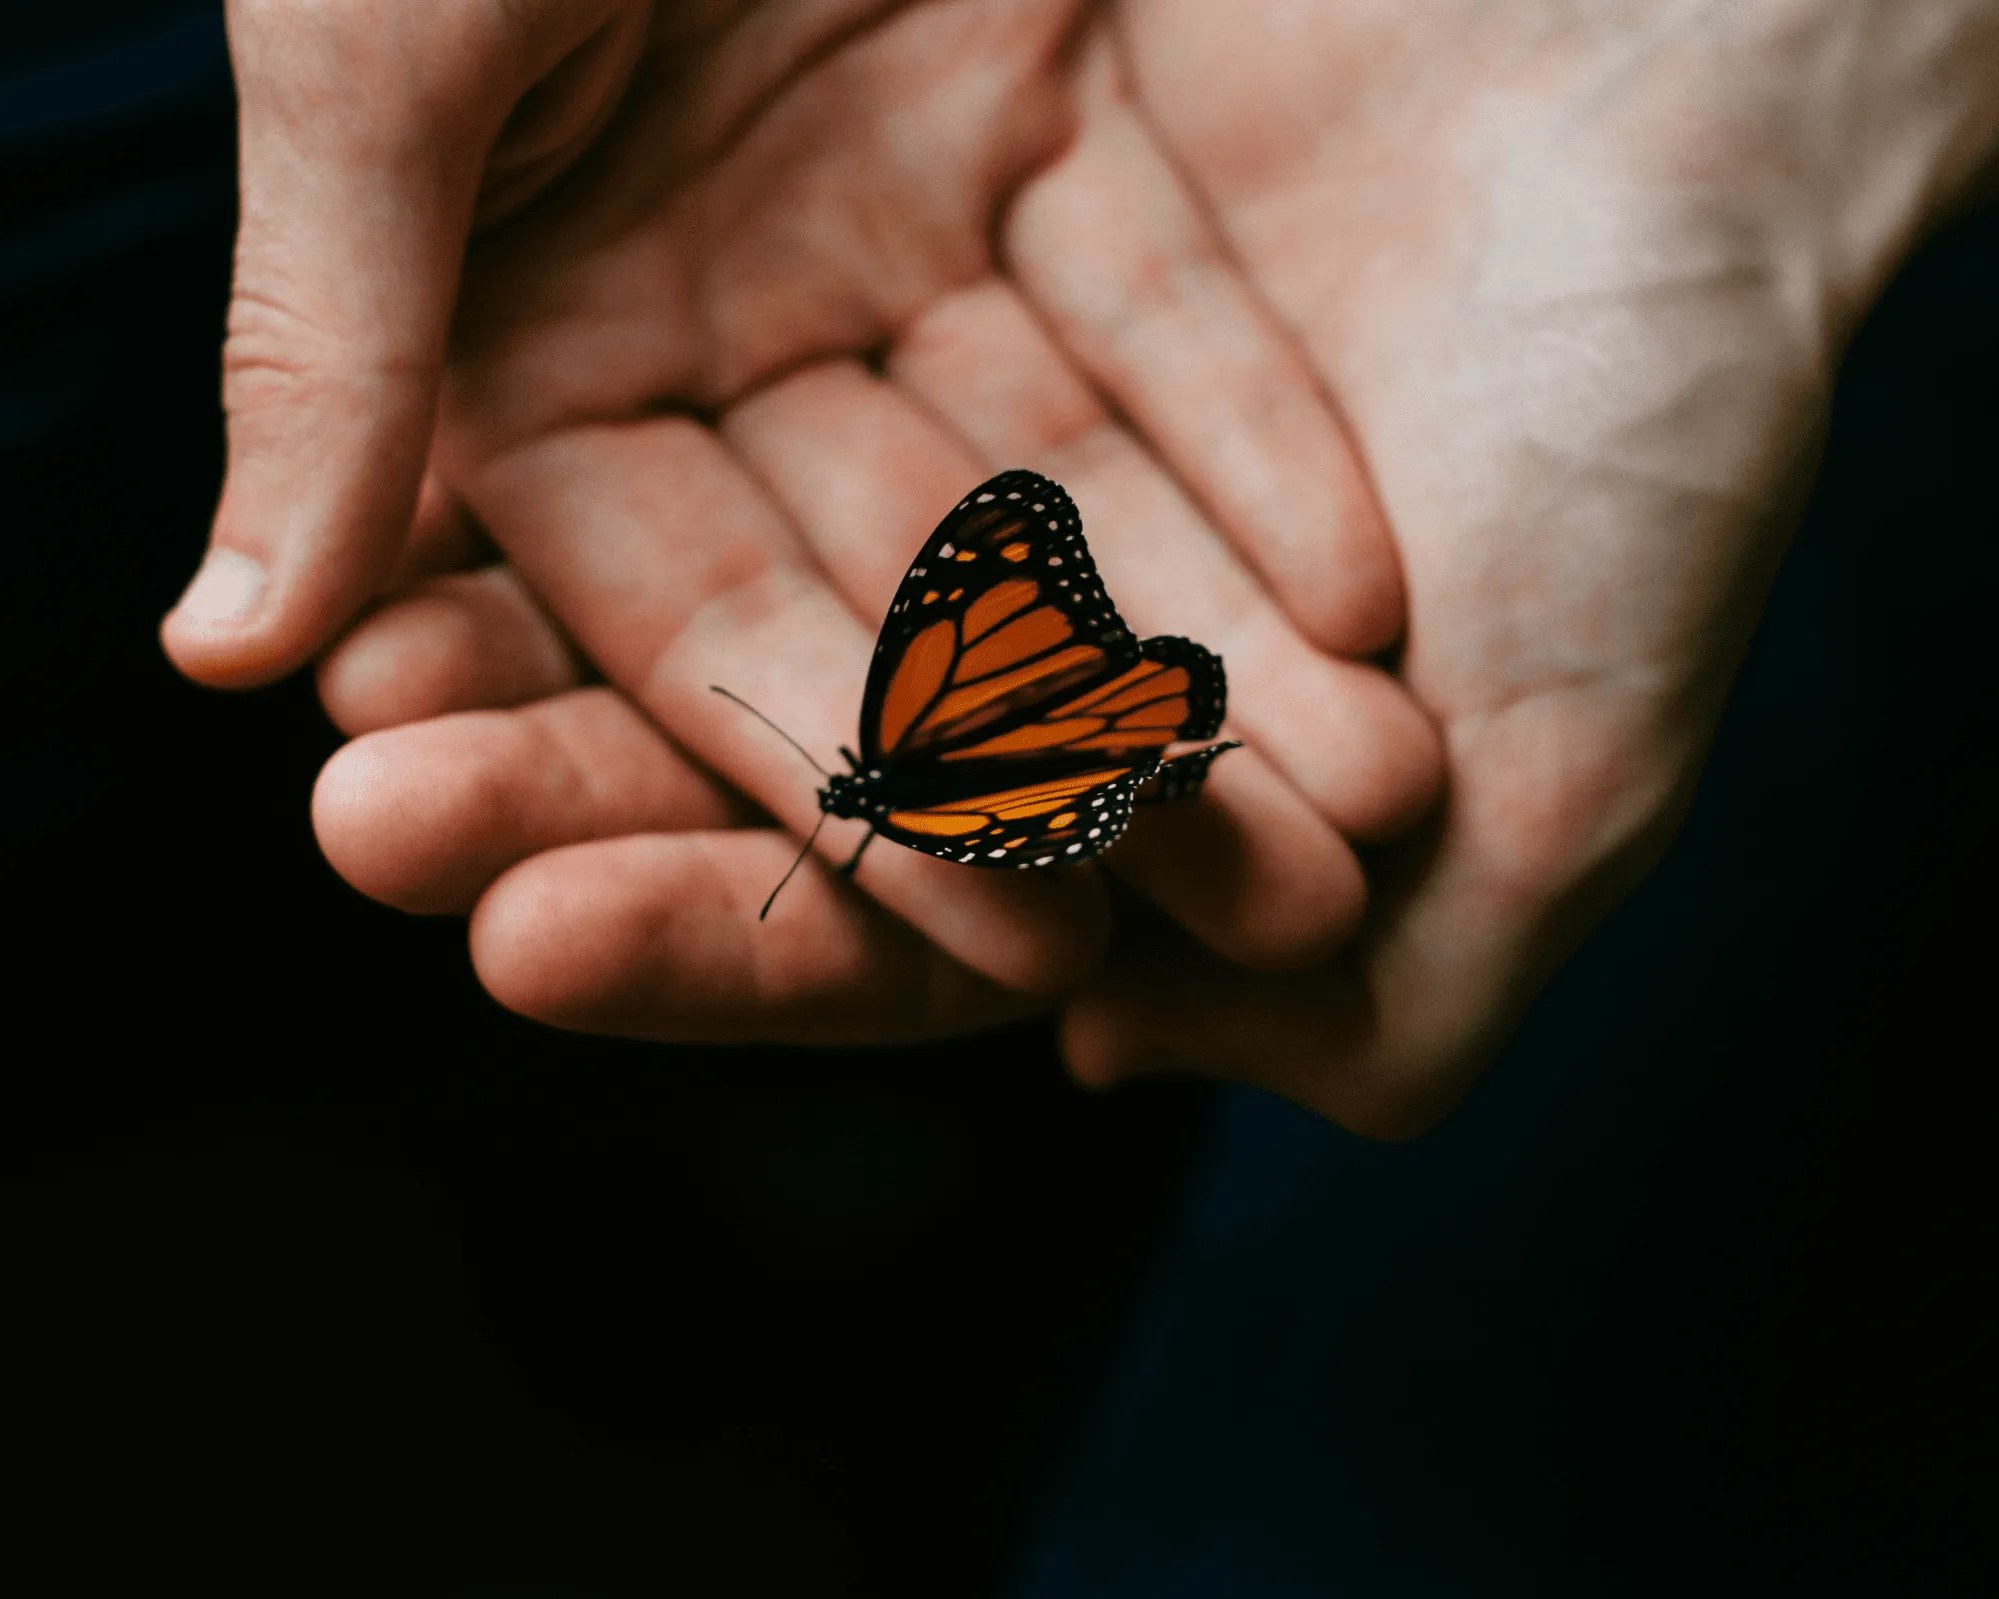 POETRY | The Butterfly by Maria Fernandez